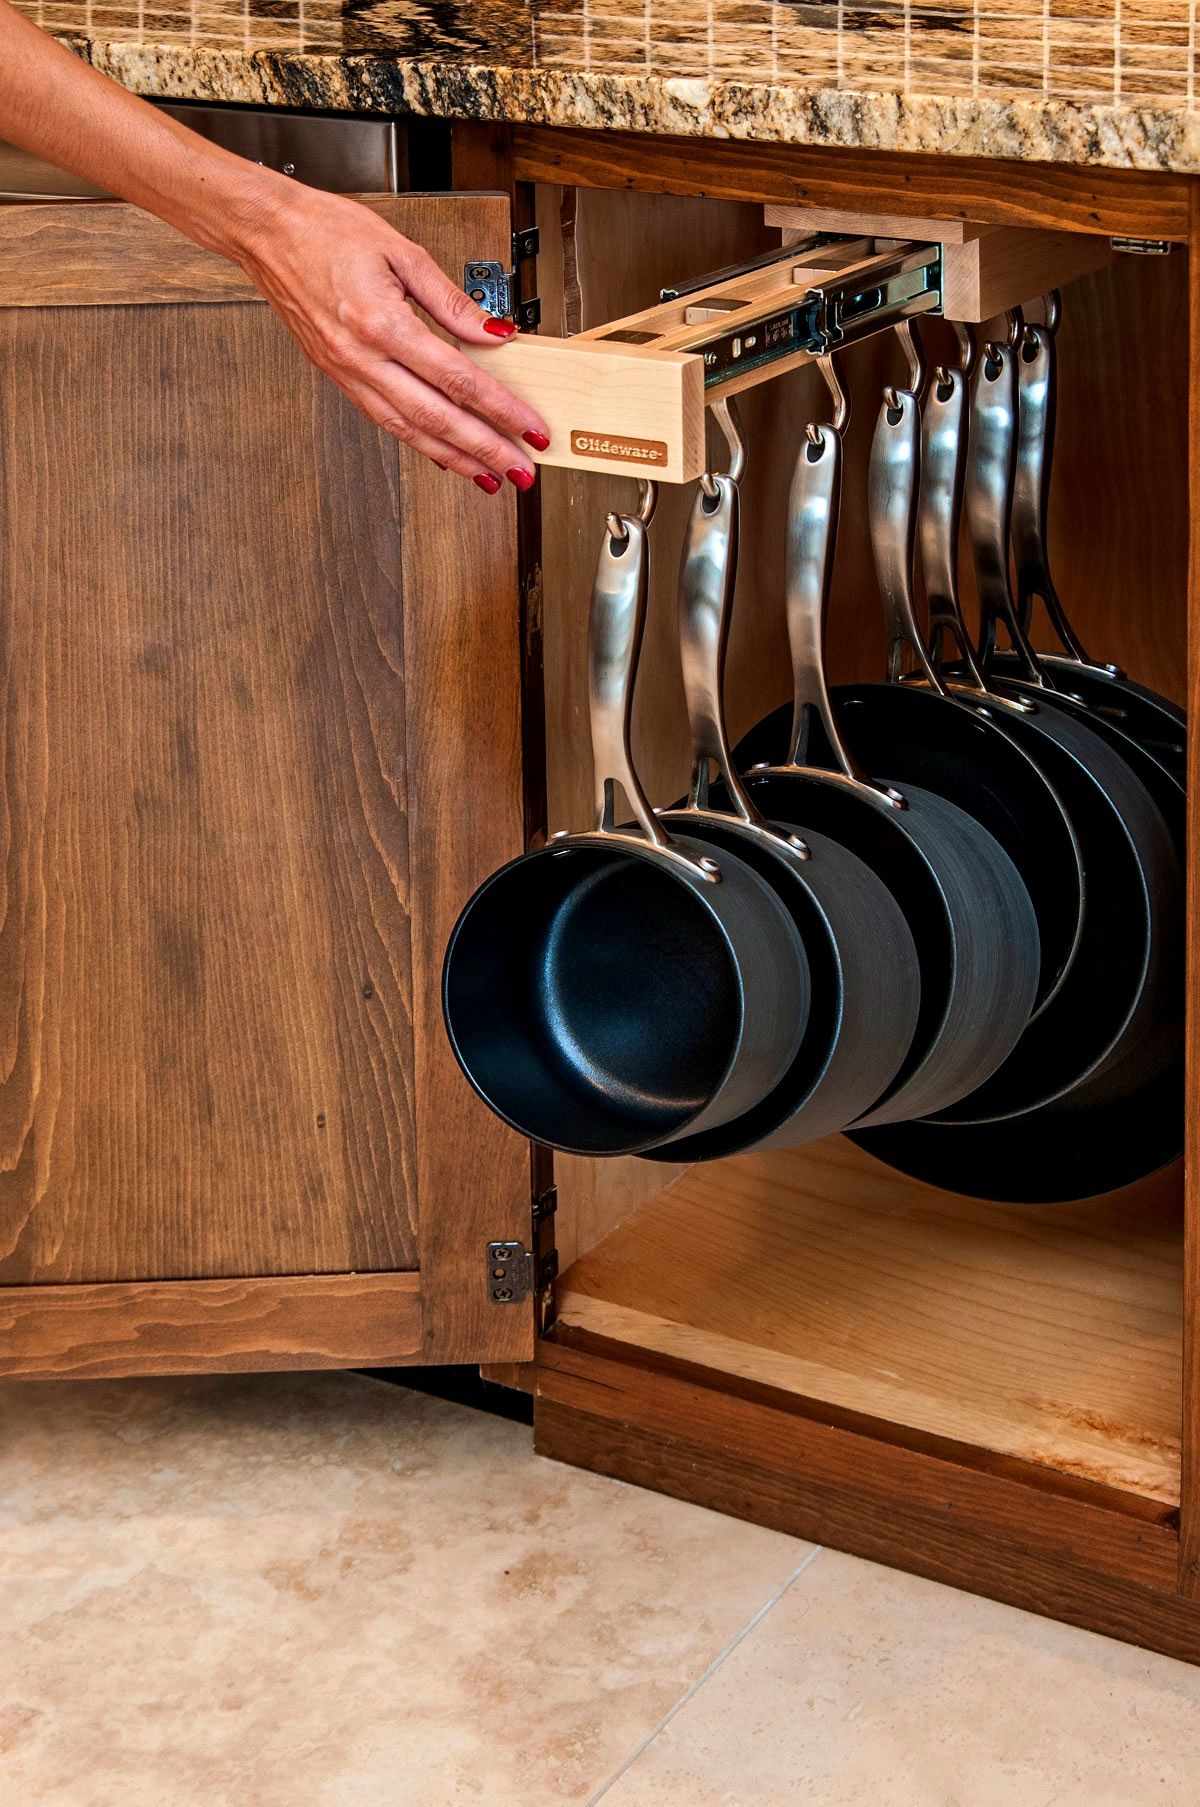 Kitchen:Cute Kitchen Pots And Pans Hanger Rack Storage Stainless Steel Cast  Iron Pan Glideware Pull Out Hooks Oak Wood Corner Frying Oil Drain Holder  ...